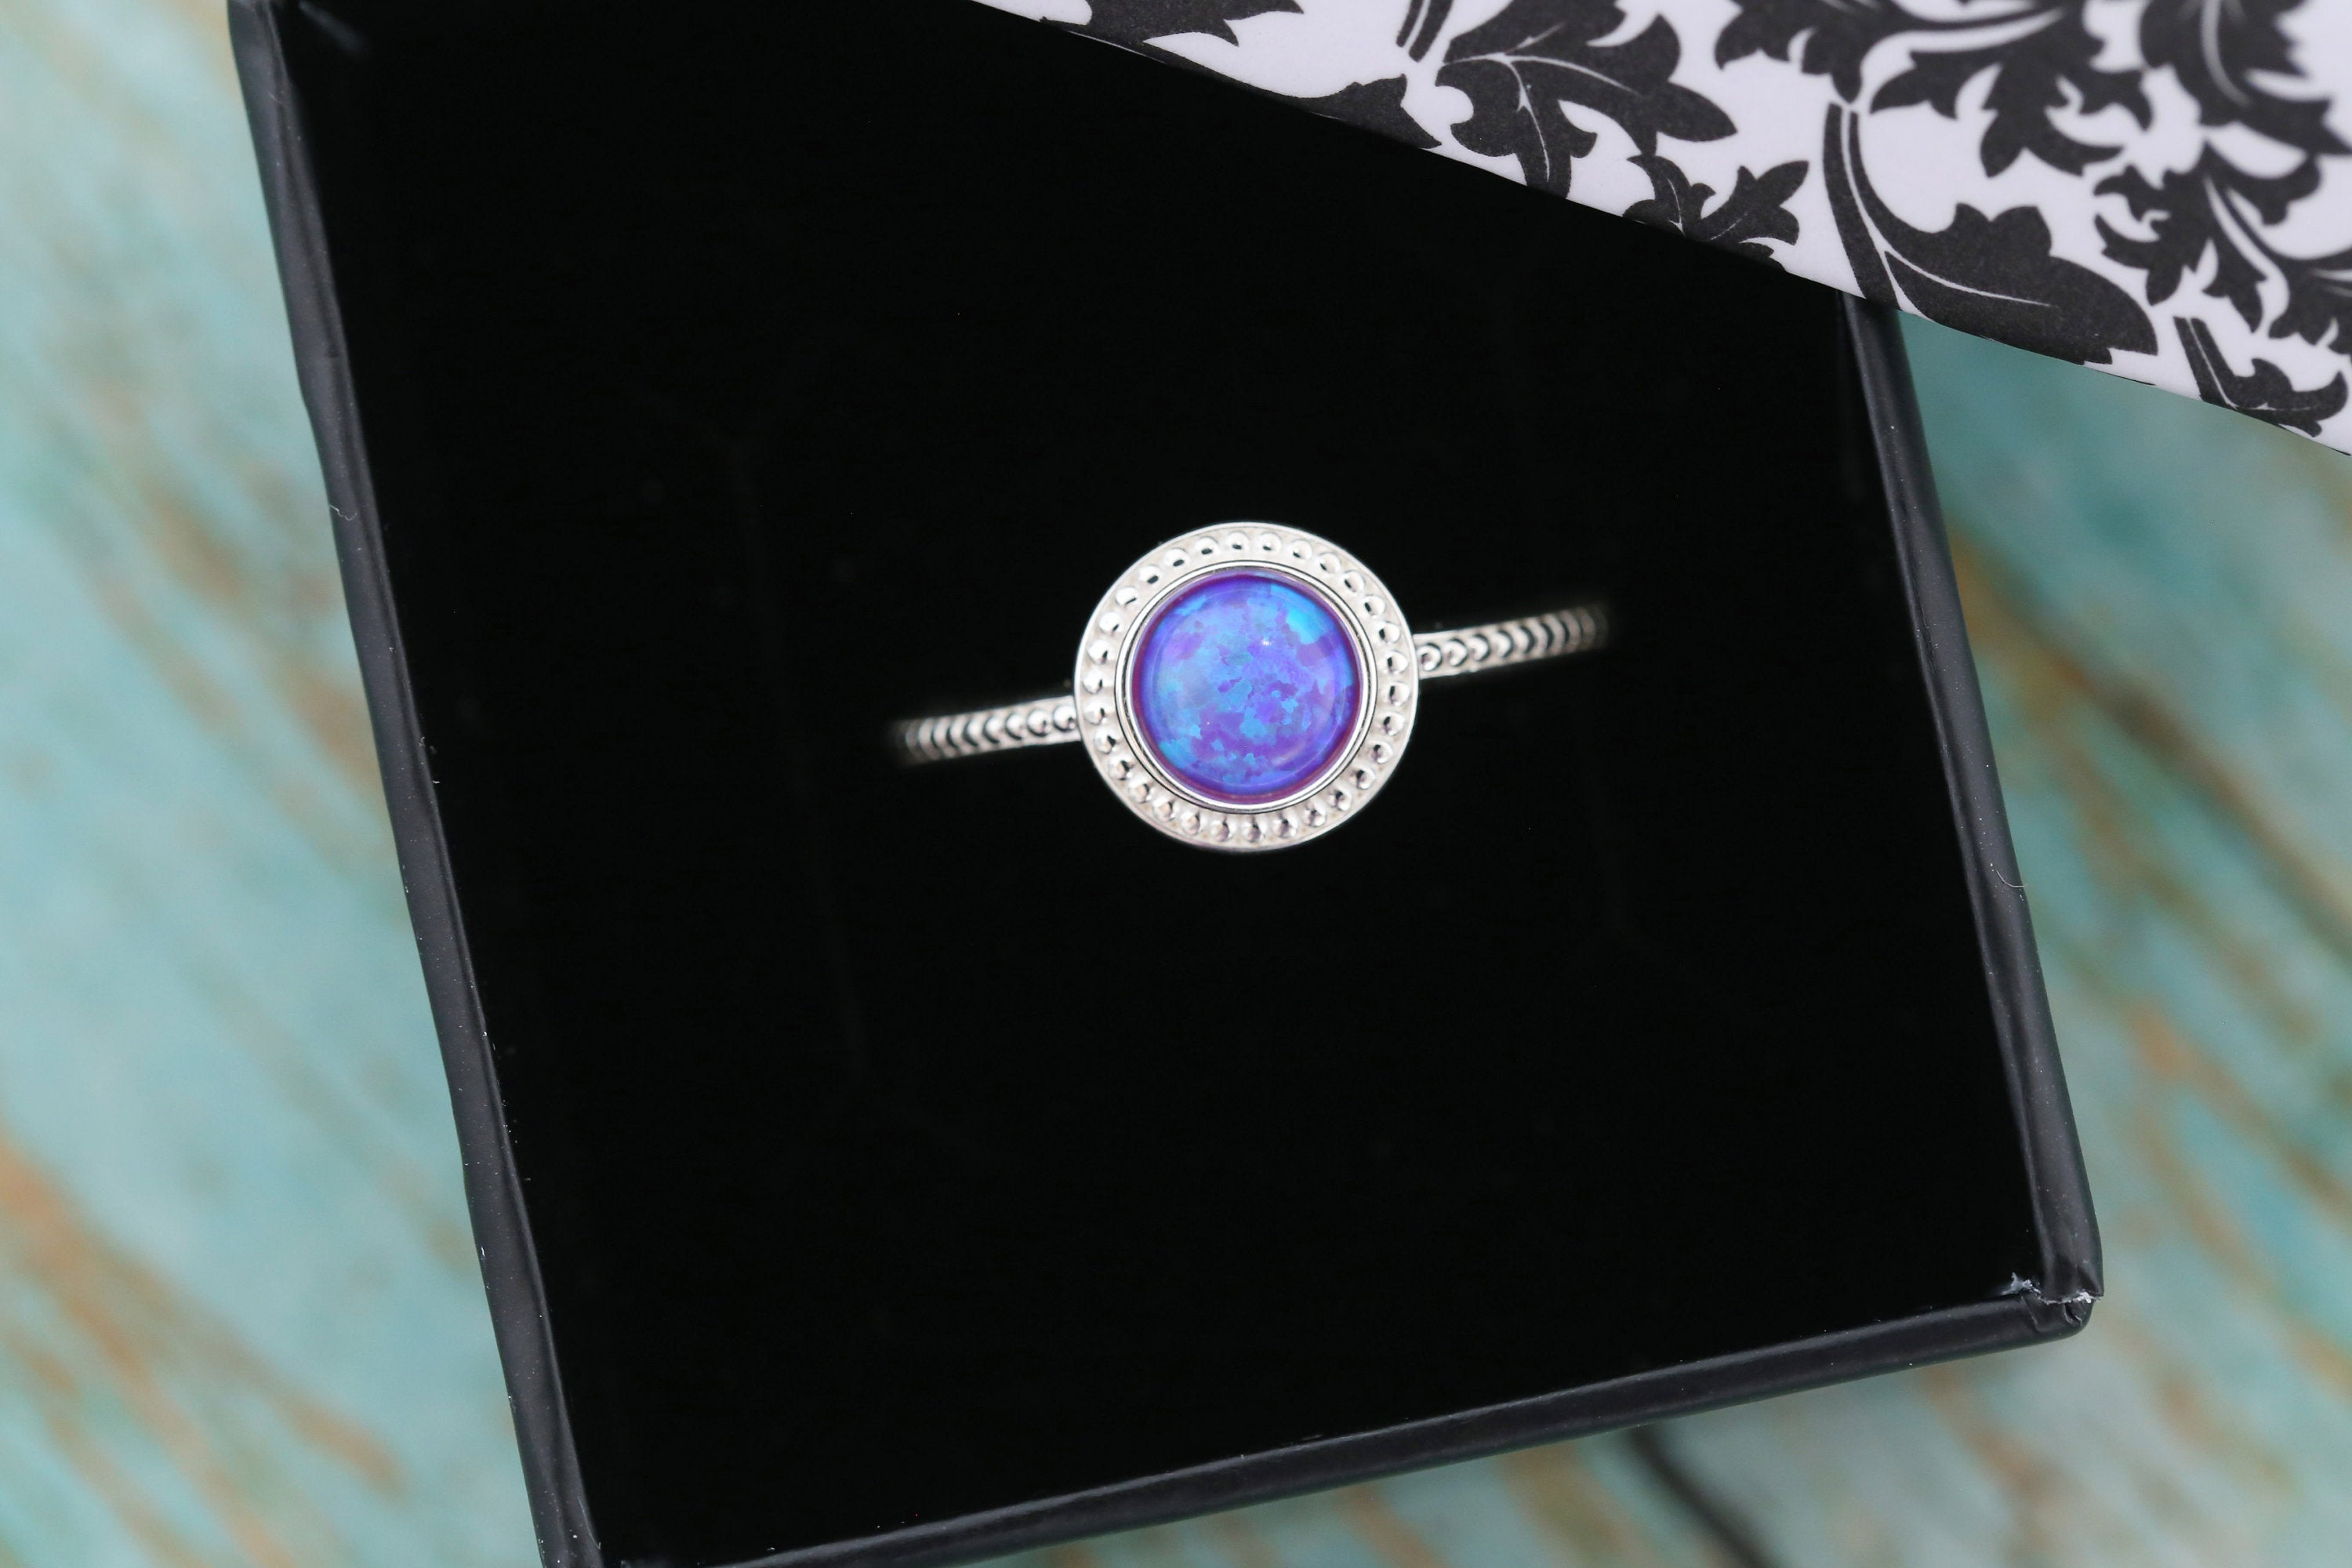 6mm Opal Cremation Ring - Sterling Silver Beaded Ring - Cremation Jewelry - Ash Ring - Ash Jewelry - Urn Ring - Pet Loss - 6mm10